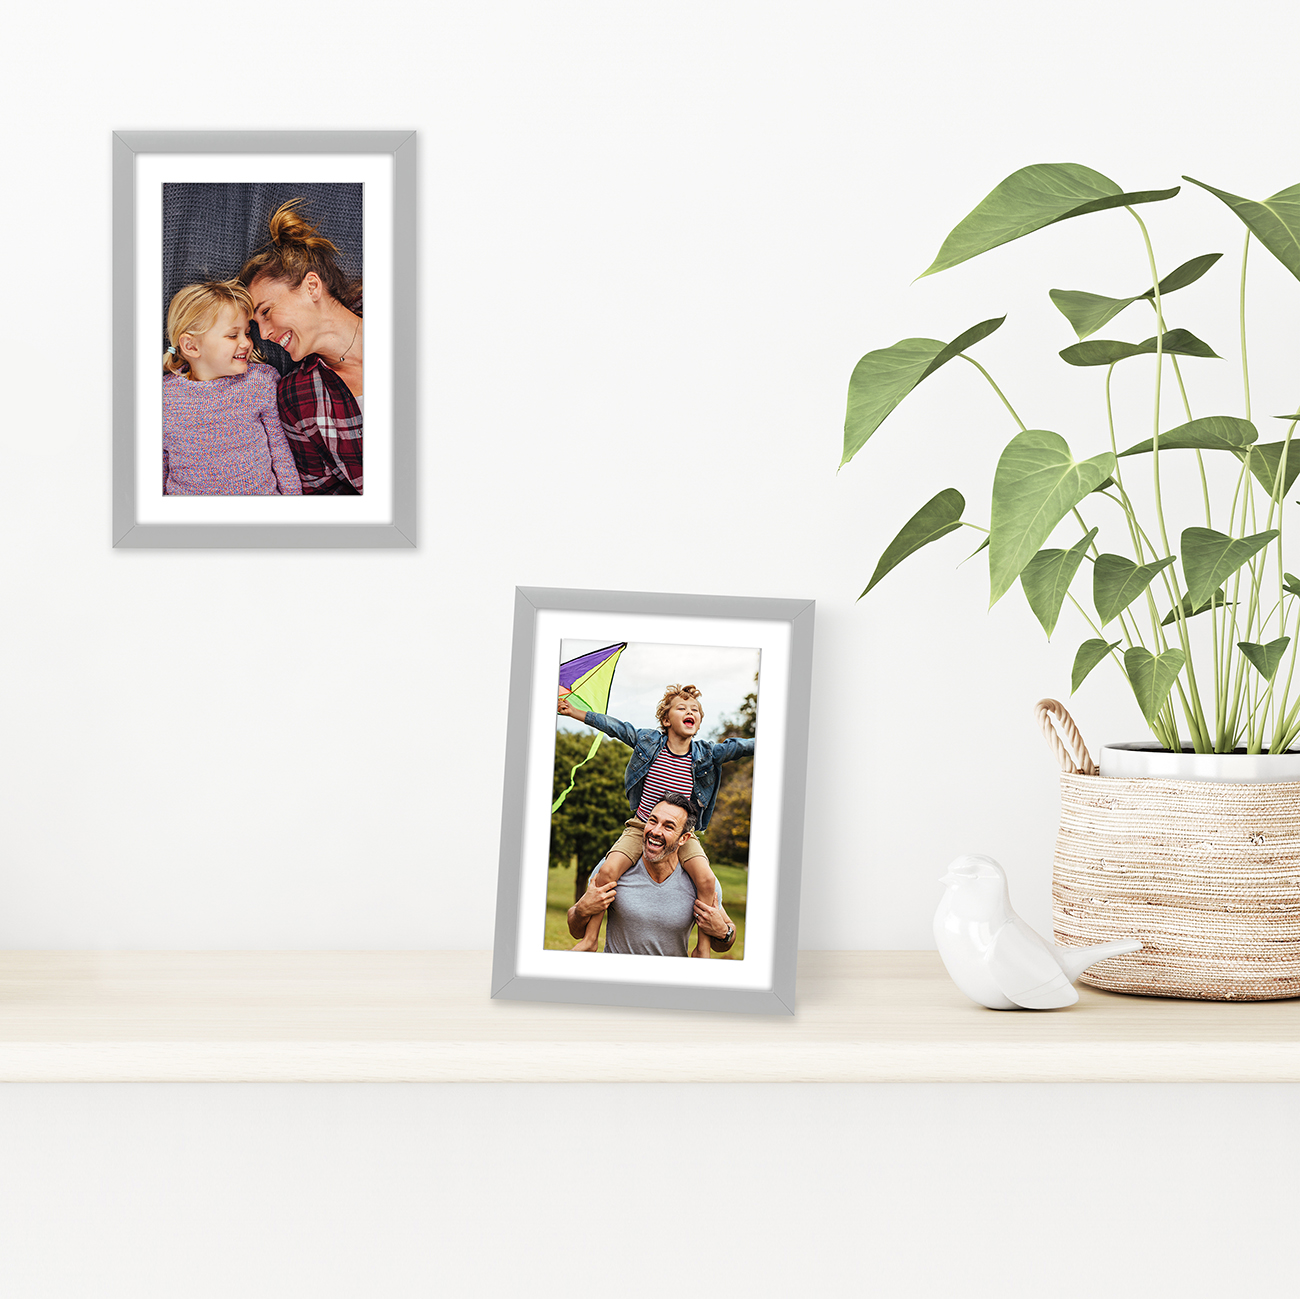 miniature 66 - Americanflat Thin Picture Frame 5x7 8x10 11x14 8.5x11 Wall Tabletop Pick Color